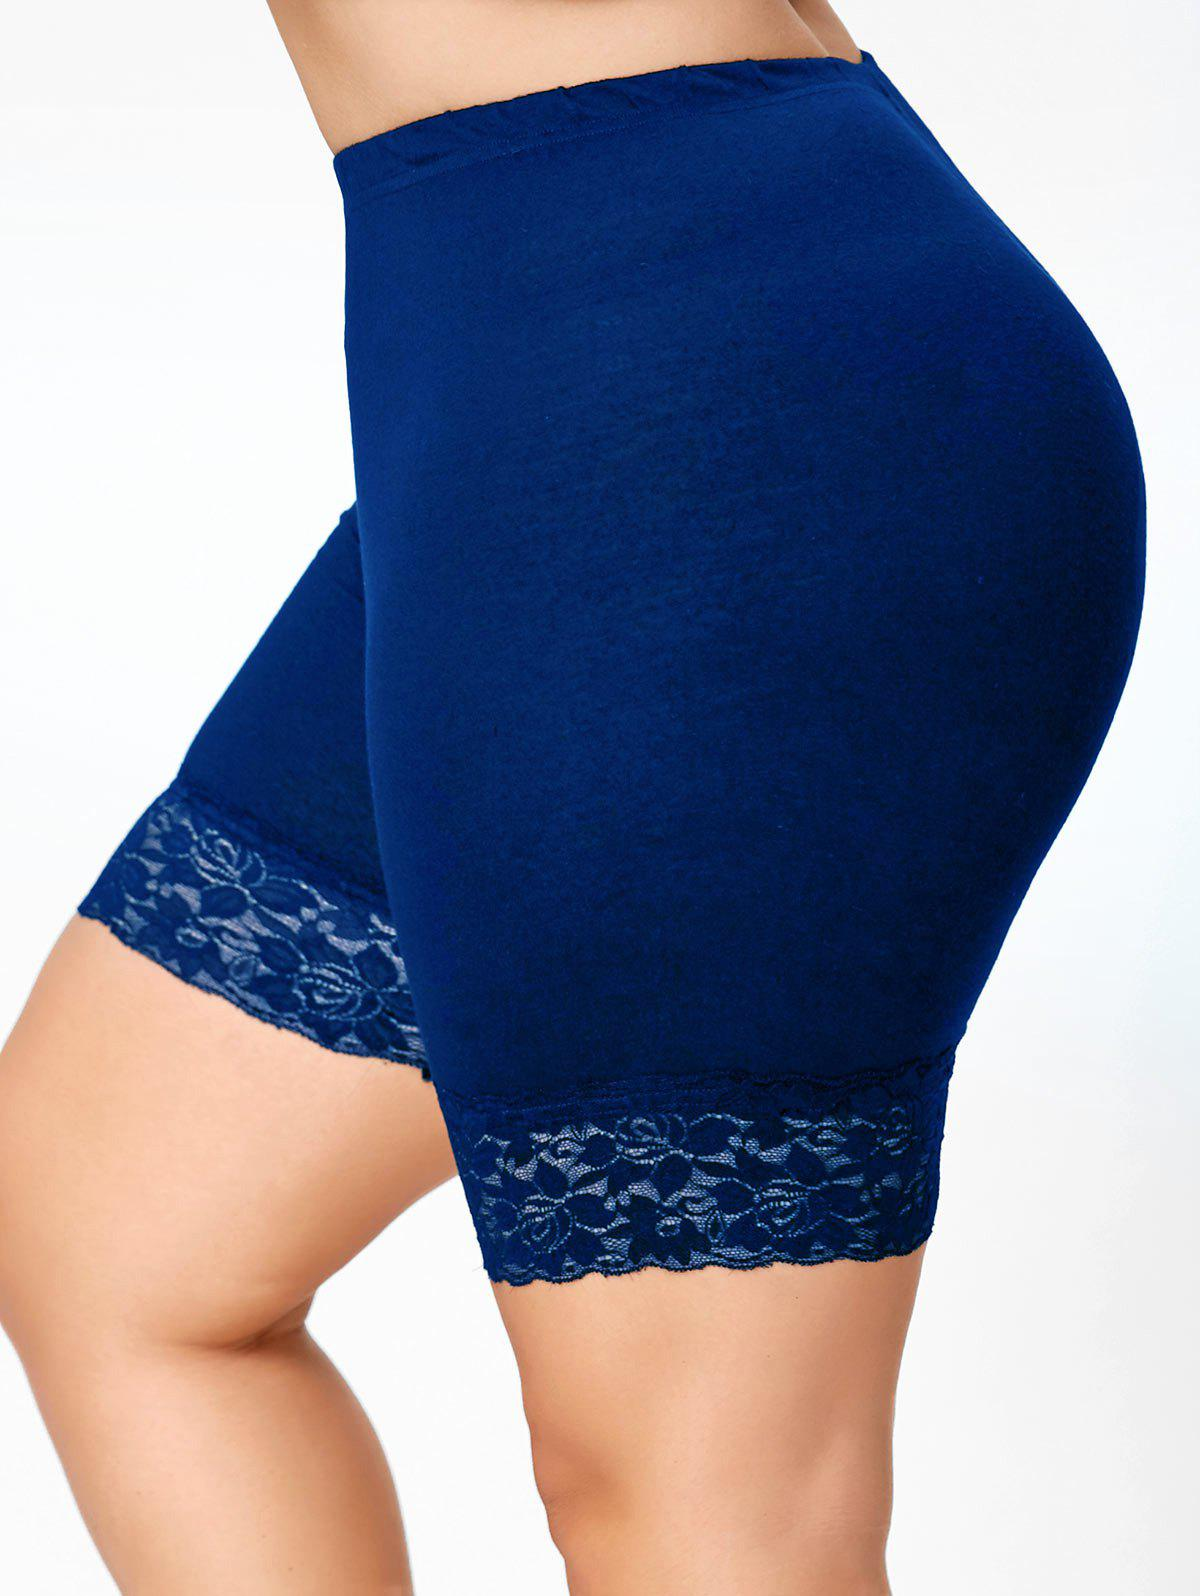 Plus Size Lace Insert Short Leggings plus size lace insert short leggings